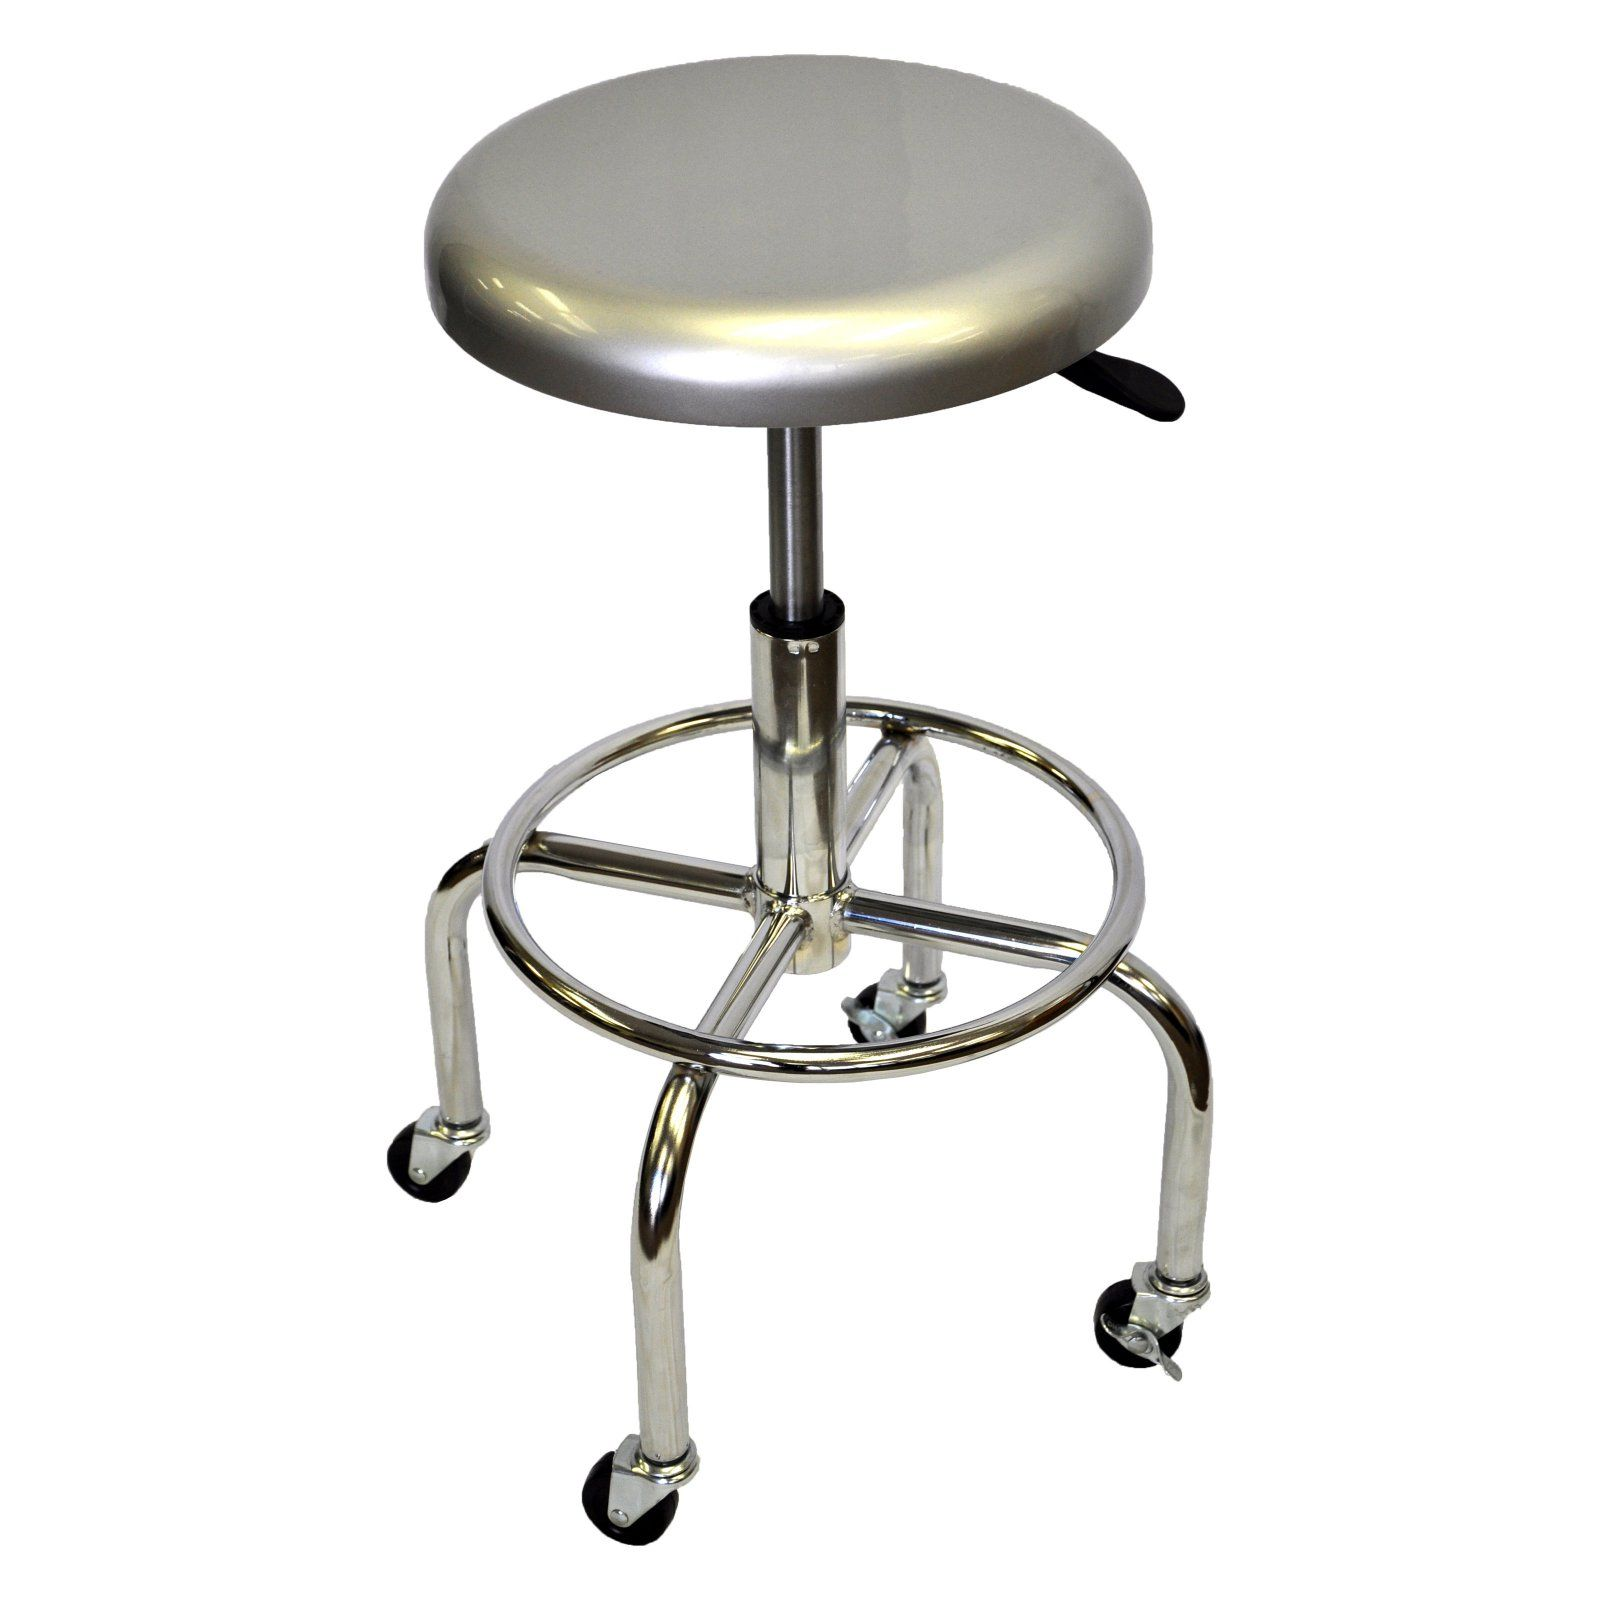 Chintaly Mansfield Adjustable Swivel Bar Stool 0388 As Crm